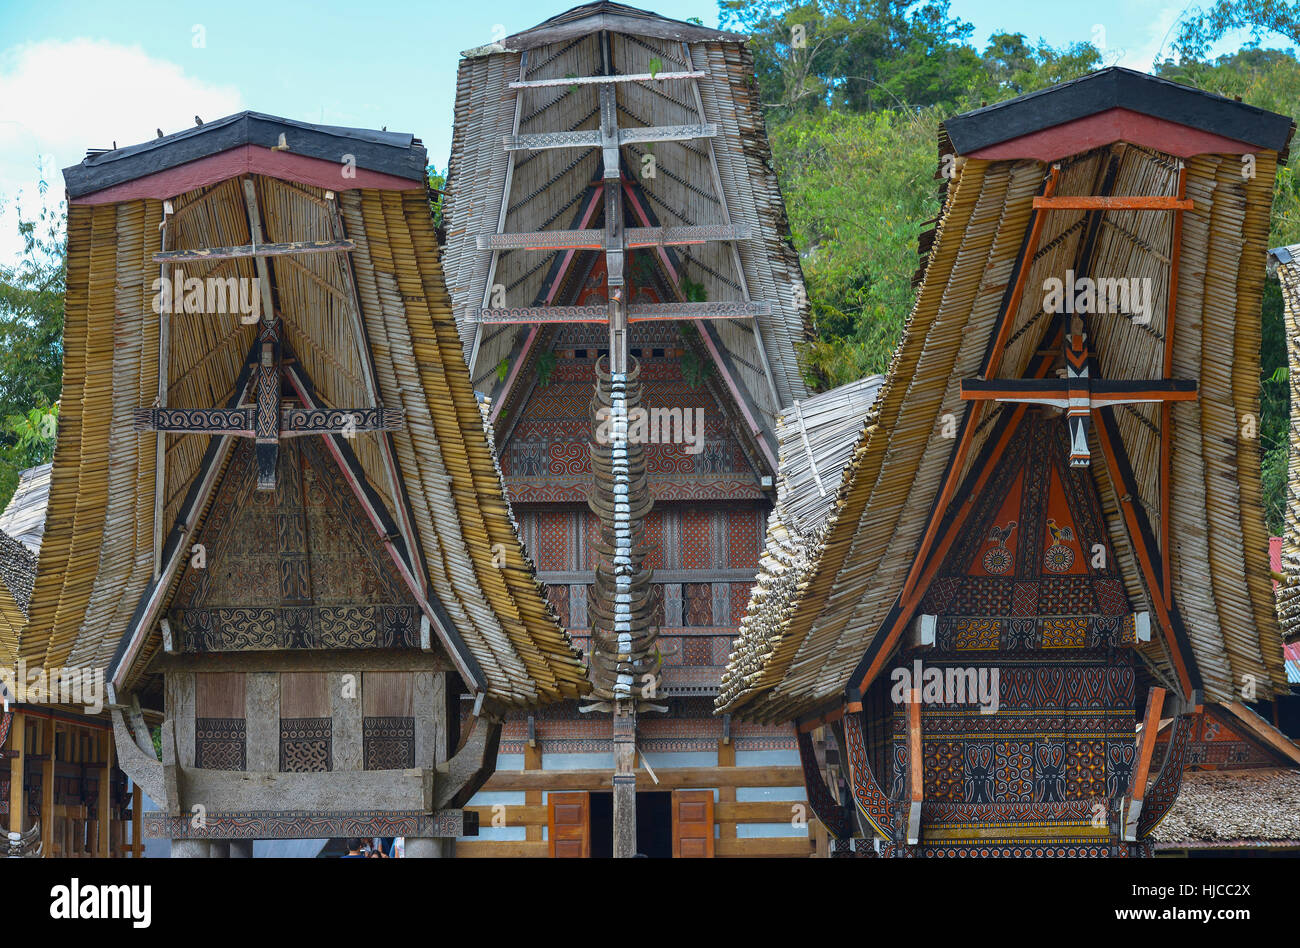 Tongkonan traditional houses in Tana Toraja, Sulawesi, Indonesia - Stock Image